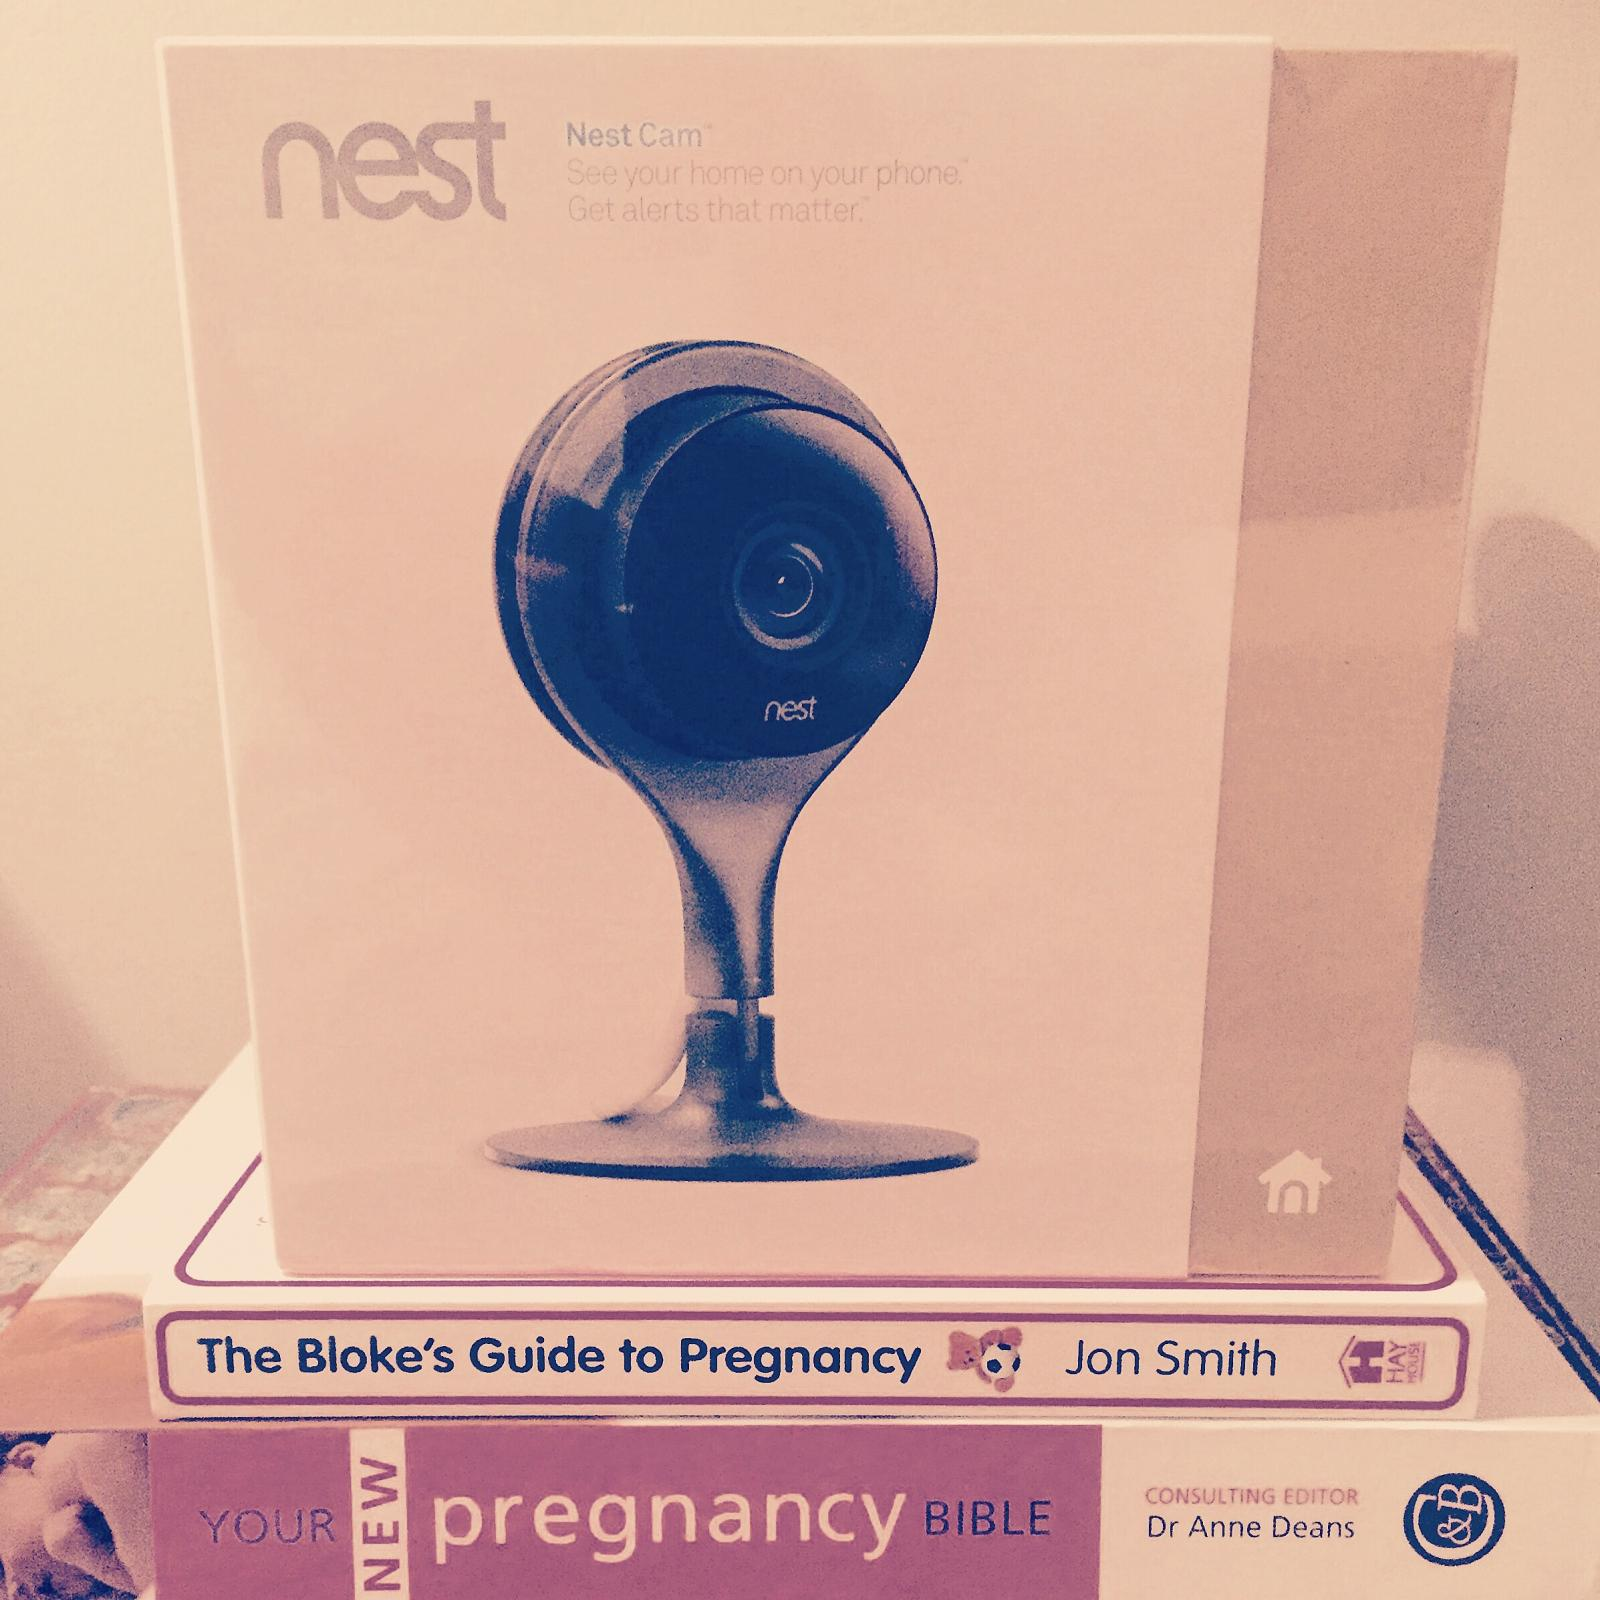 Nest Cam - baby monitor for gadget loving dads!